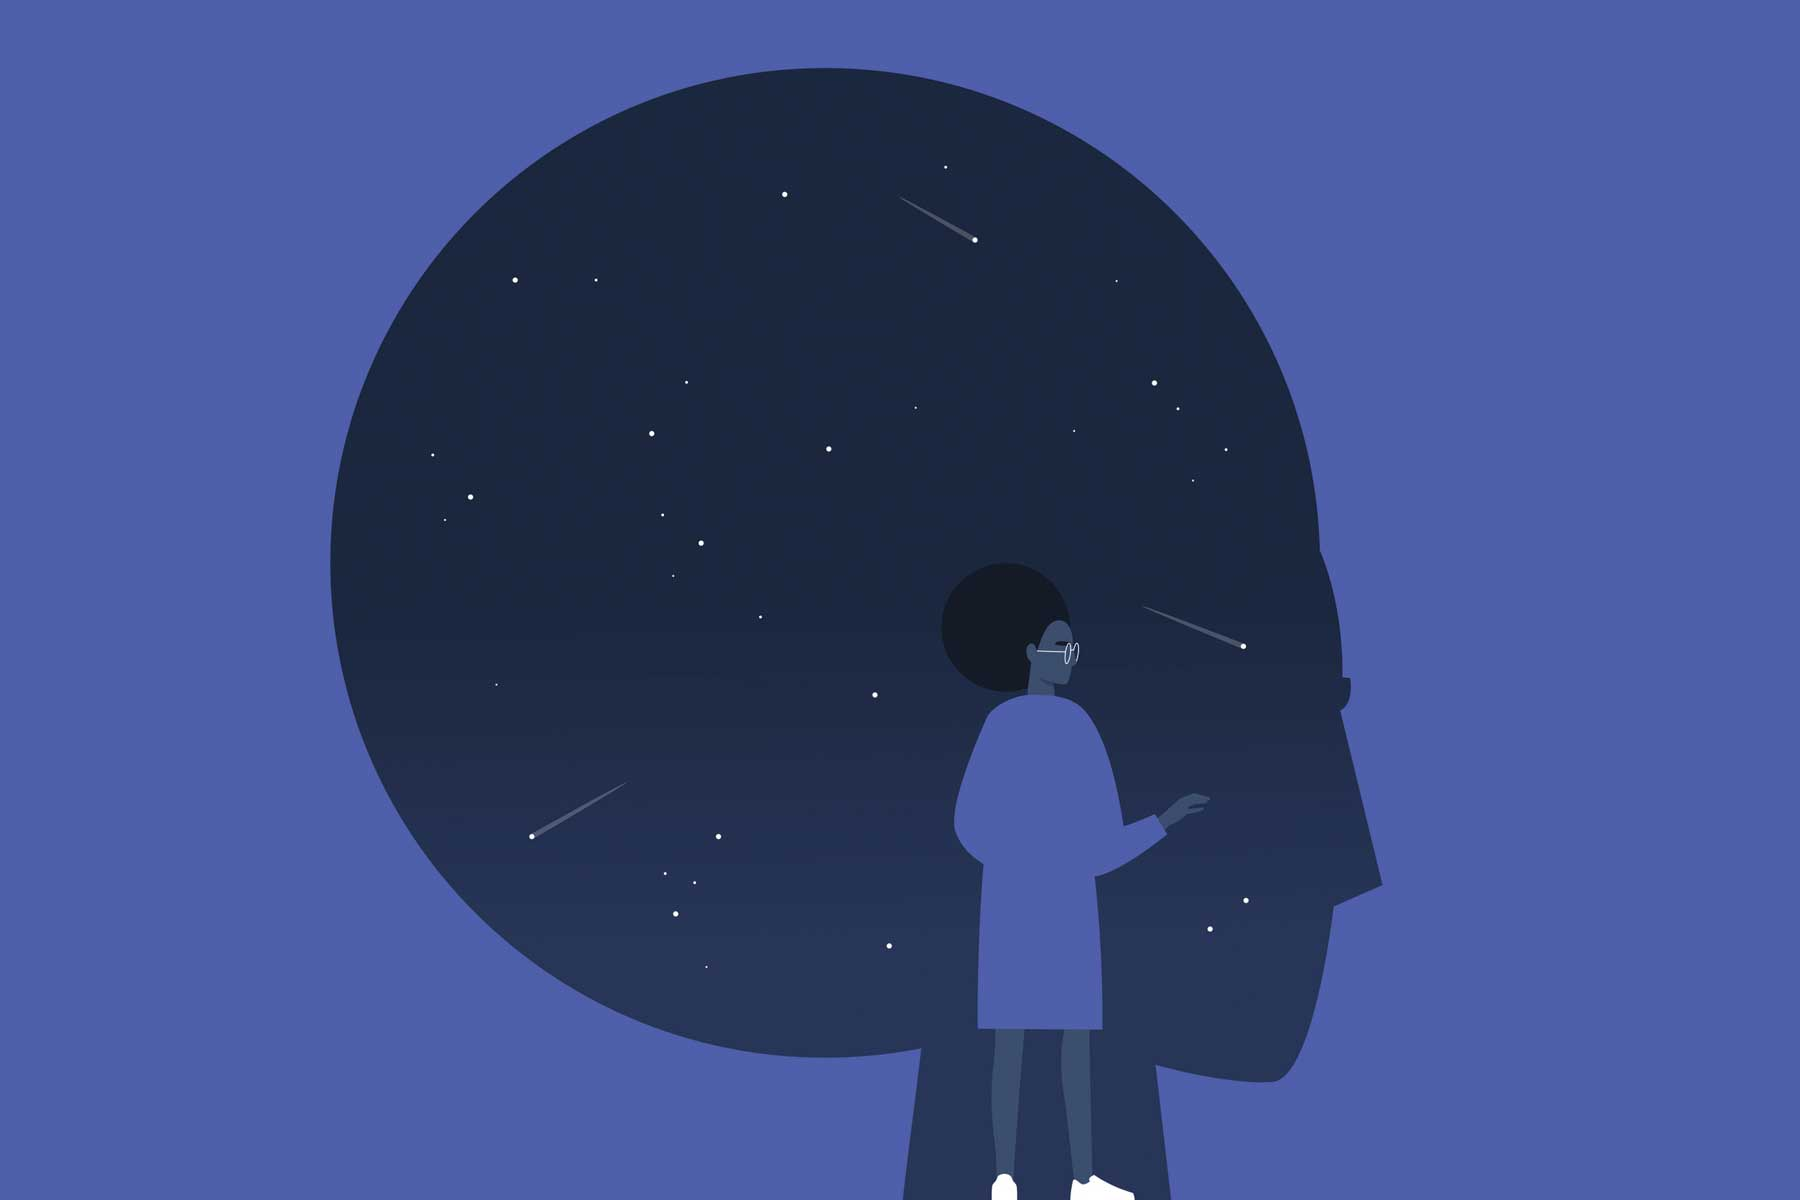 Psychoanalysis, young black female character studying their own subconscious, stars and comets inside a dark silhouette